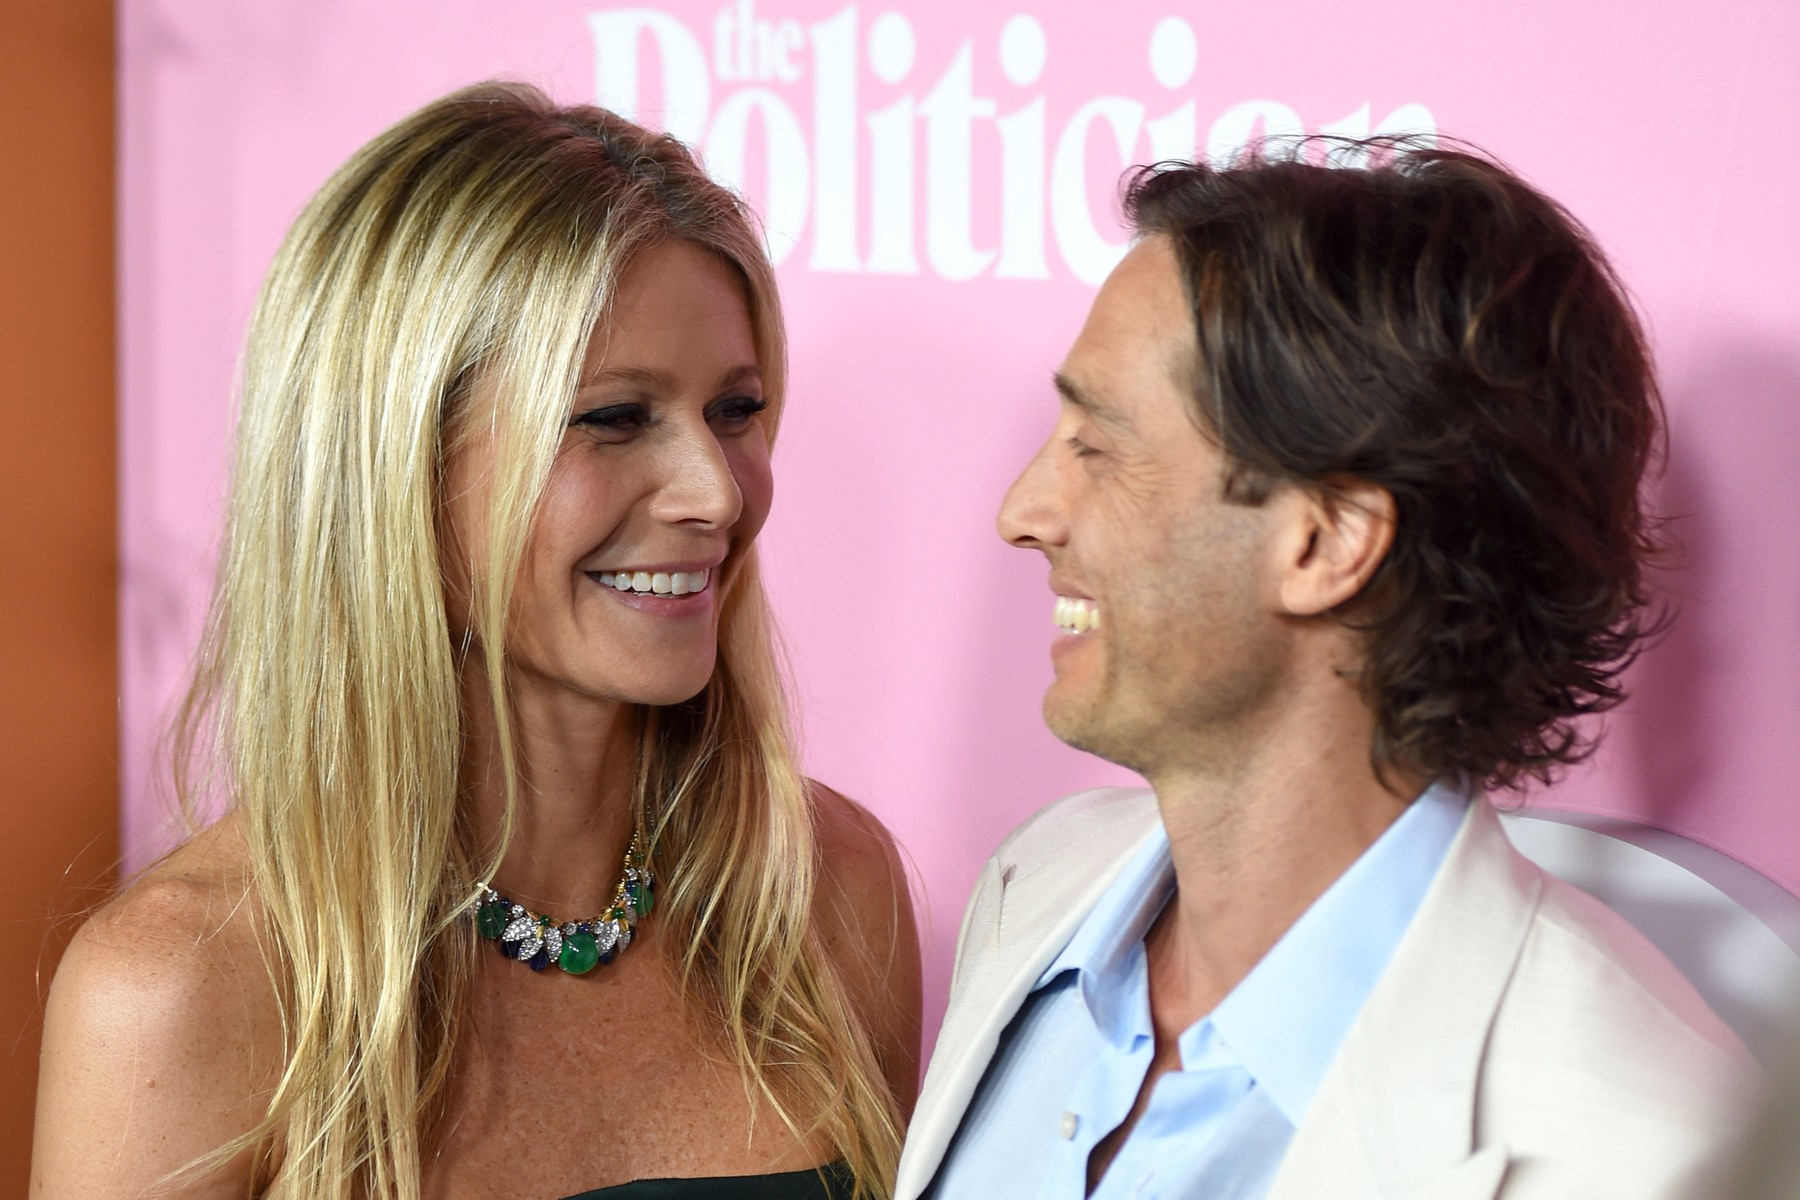 Gwyneth Paltrow, Brad Falchuk 'The Politician' TV show premiere on September 26, 2019 in New York, Image: 473638461, License: Rights-managed, Restrictions: , Model Release: no, Credit line: AUG/face to face / Face to Face / Profimedia